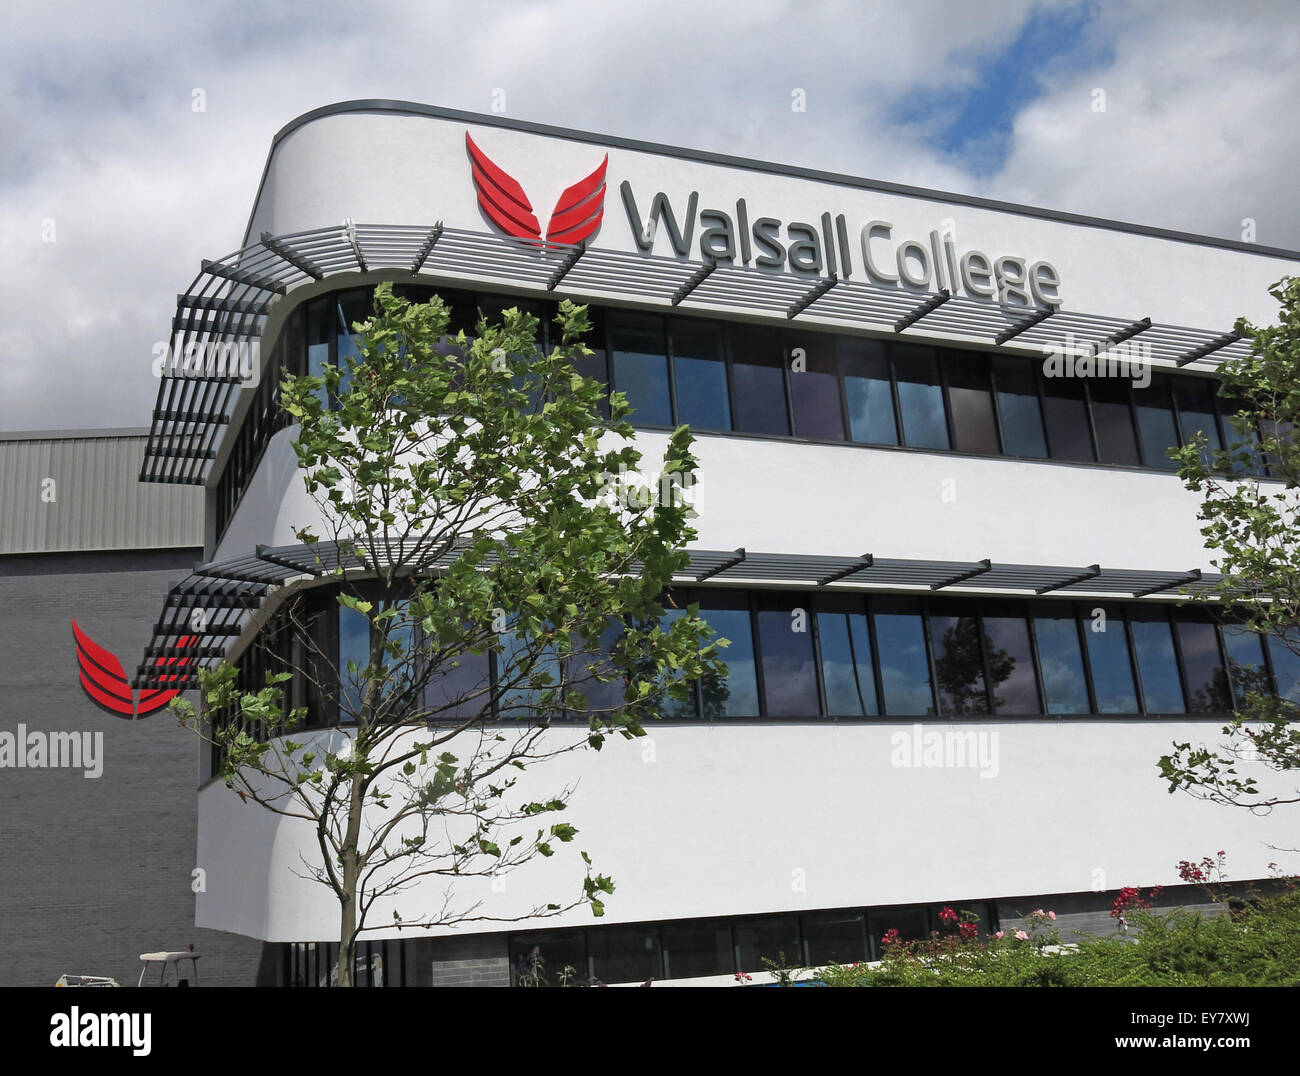 Walsall New College Building, West Midlands, England, UK - Stock Image